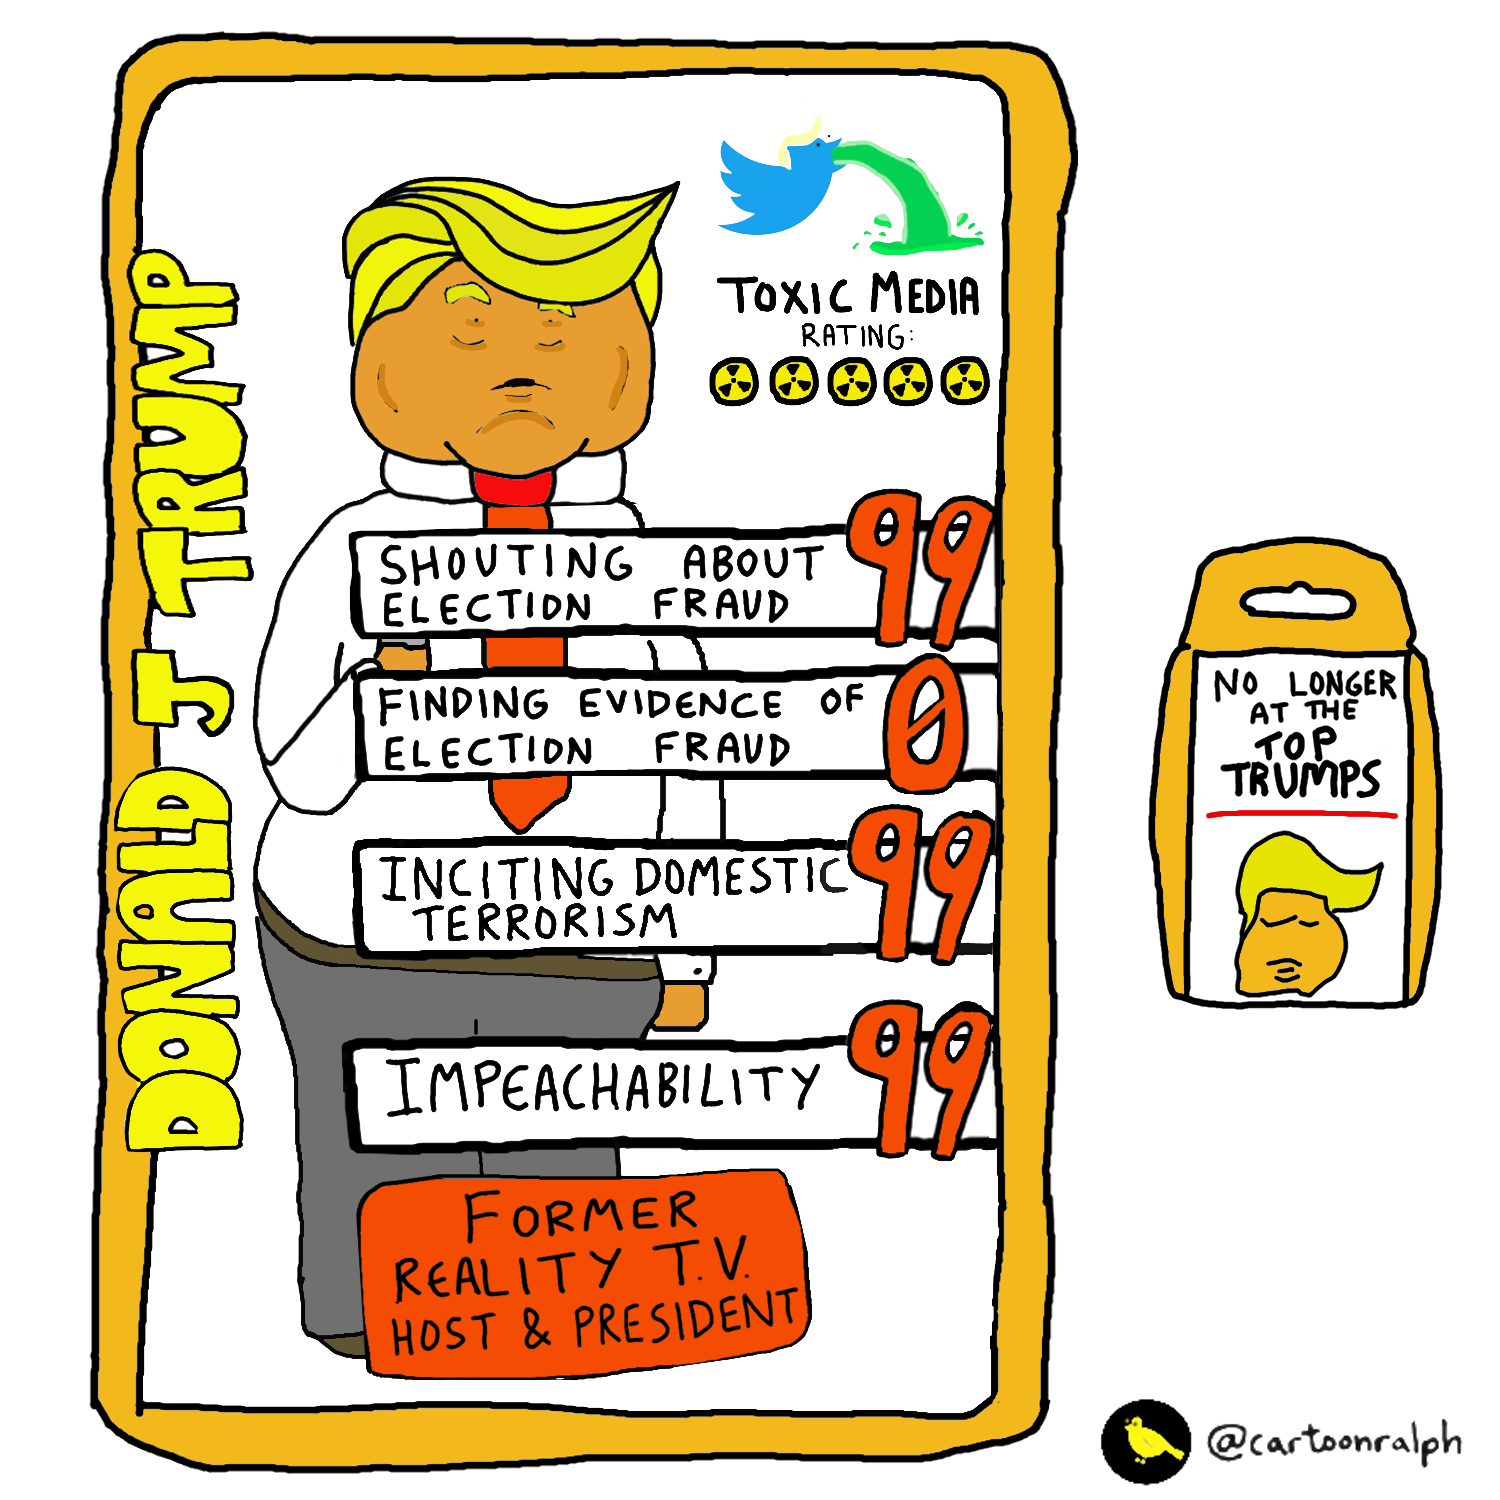 Read more about the article Trump's top for impeachability